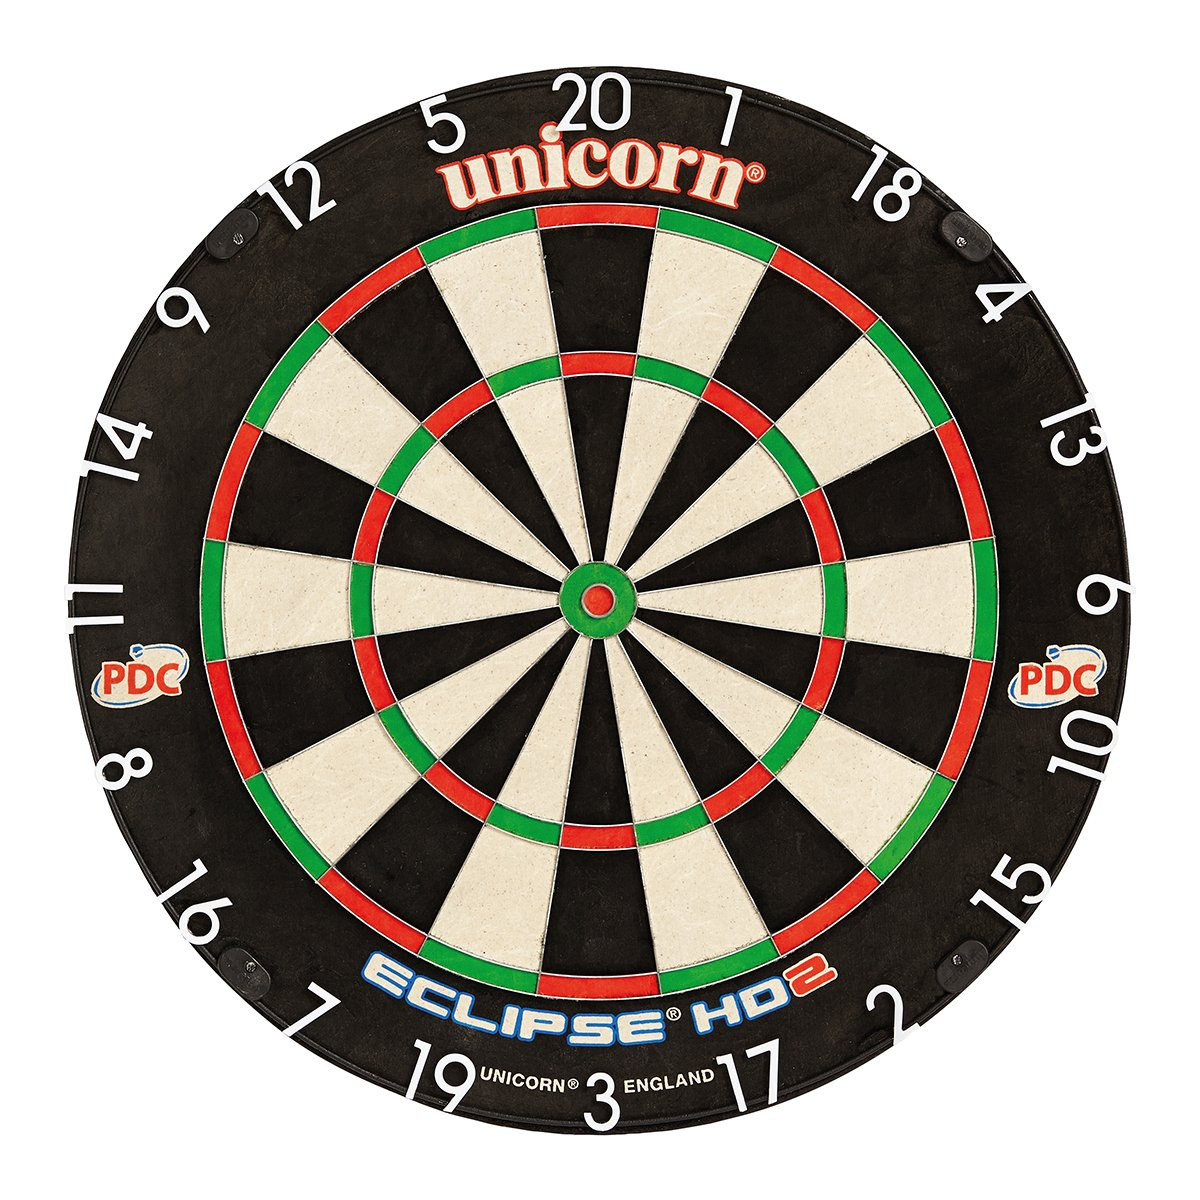 Unicorn Eclipse HD2 Bristle Dartboard by Unicorn